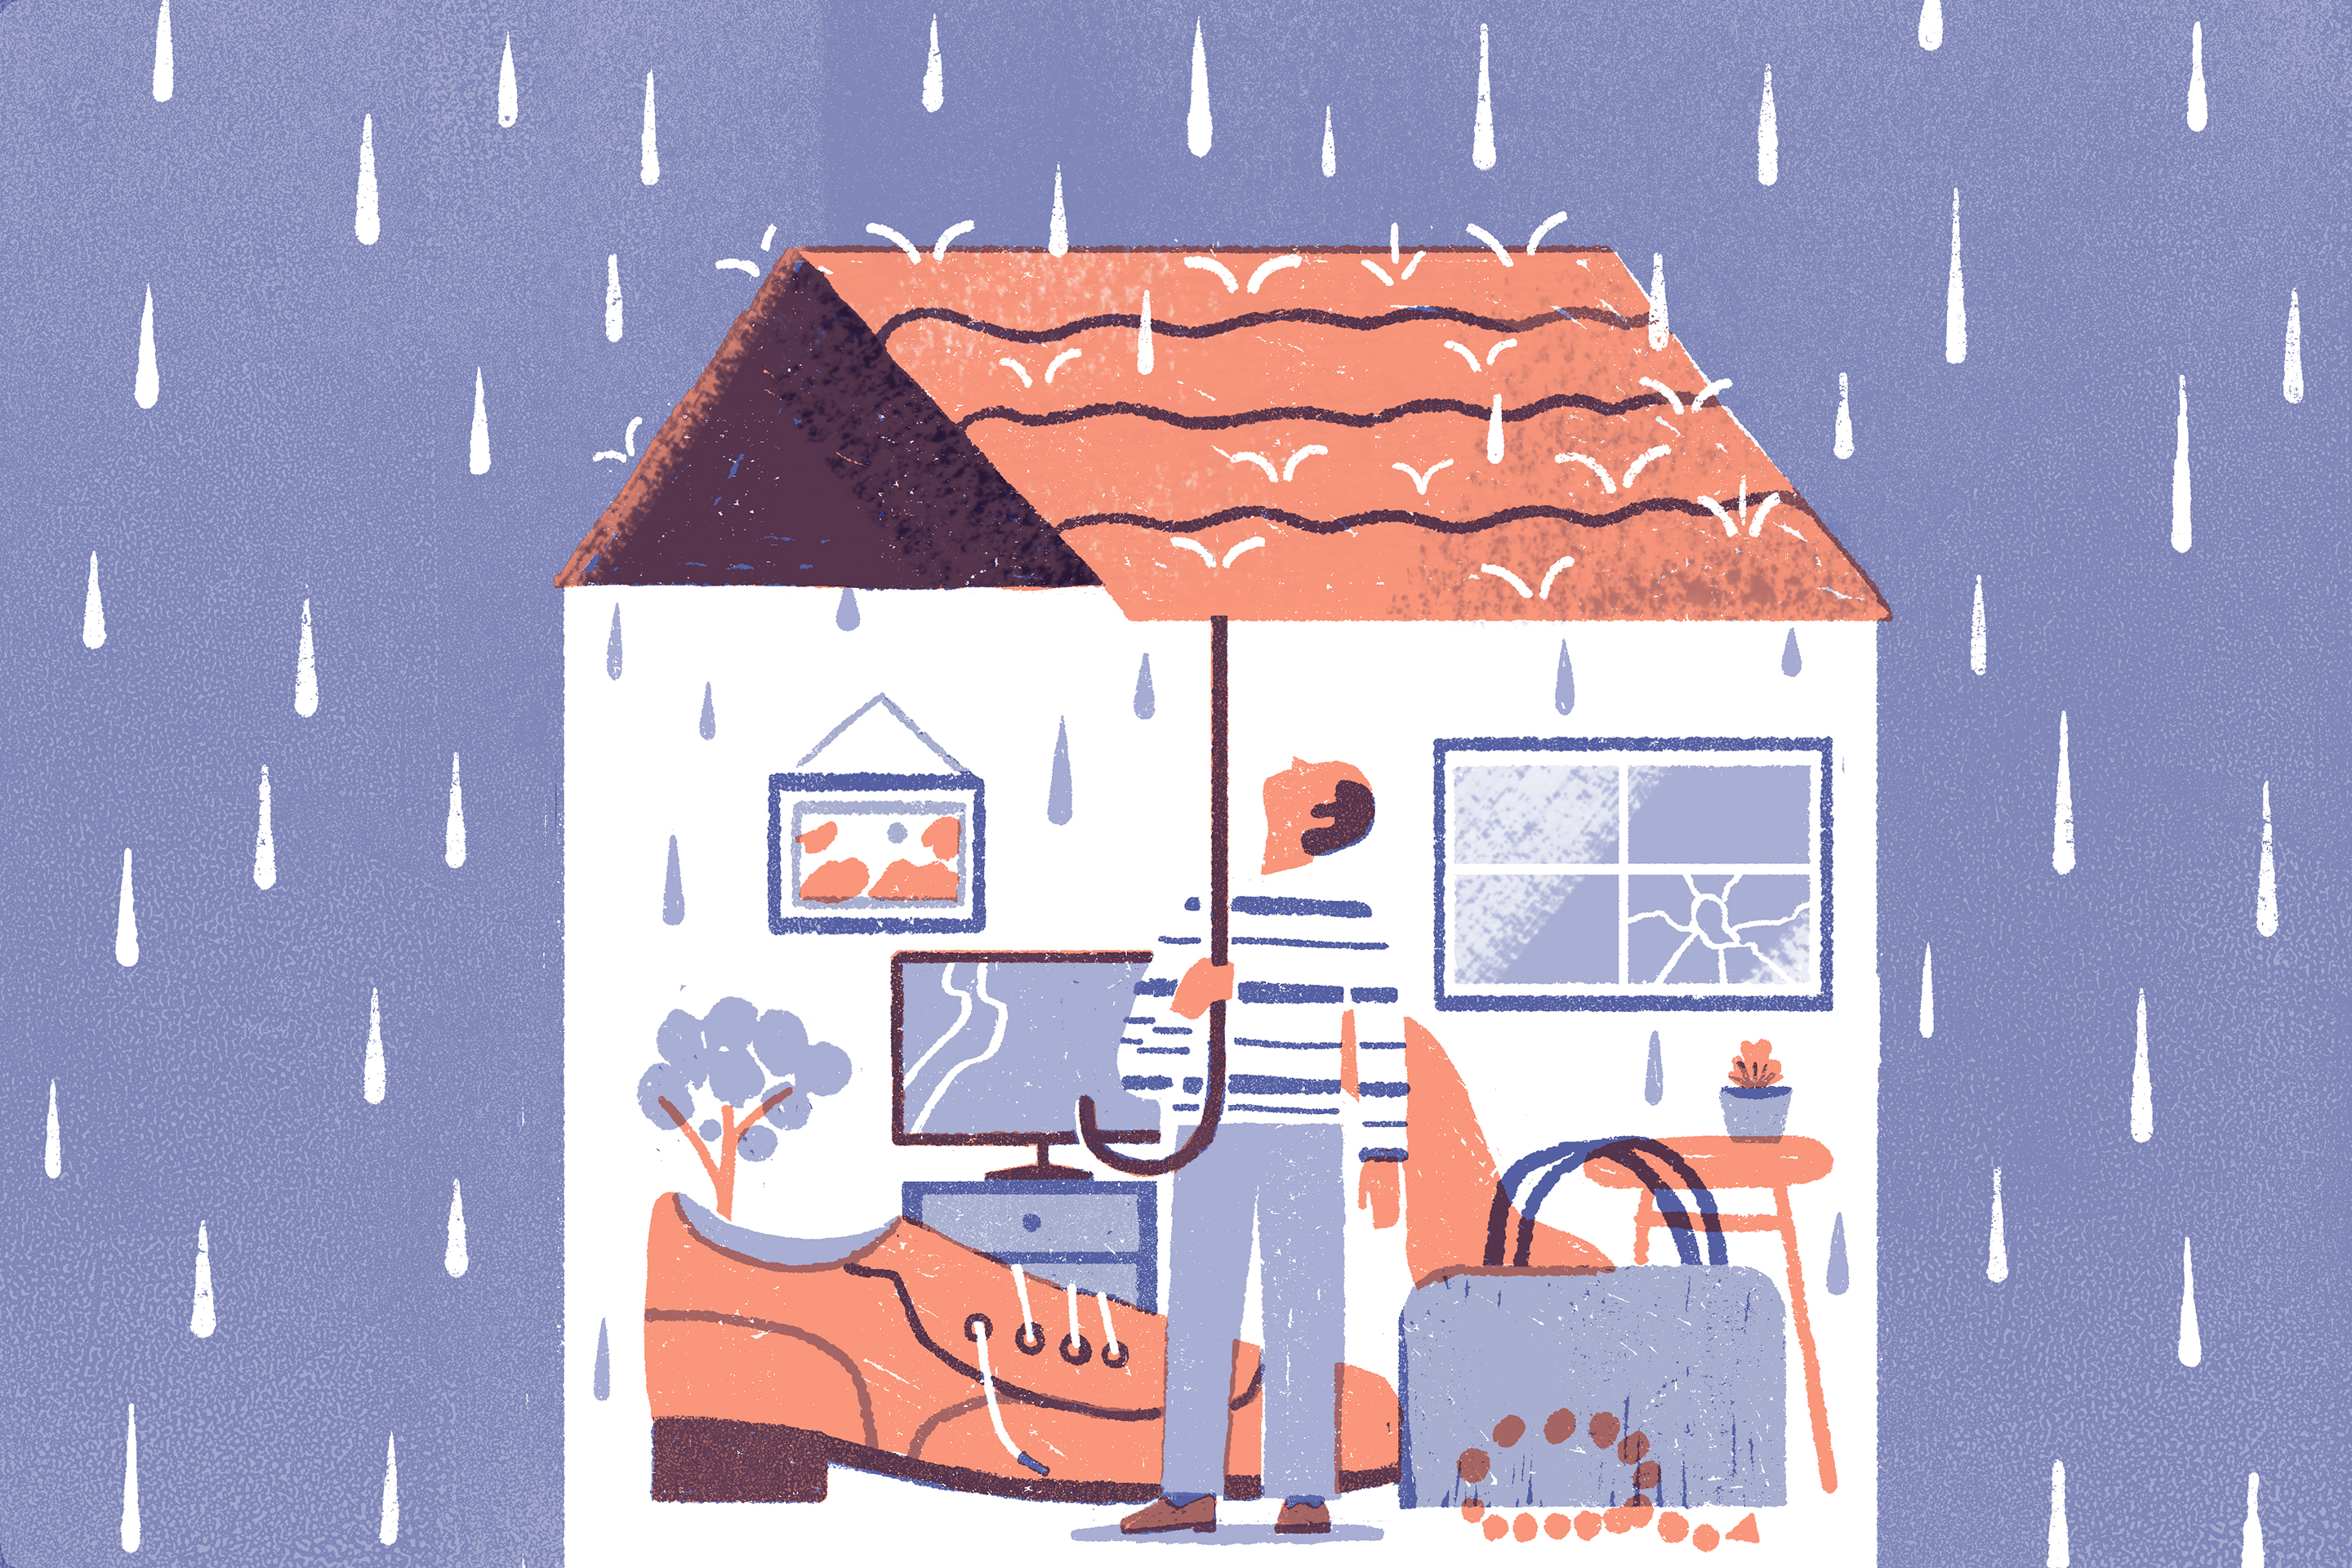 A man stands in the middle of rain, surrounded by various house items. He holds an umbrella in the shape of a house roof.